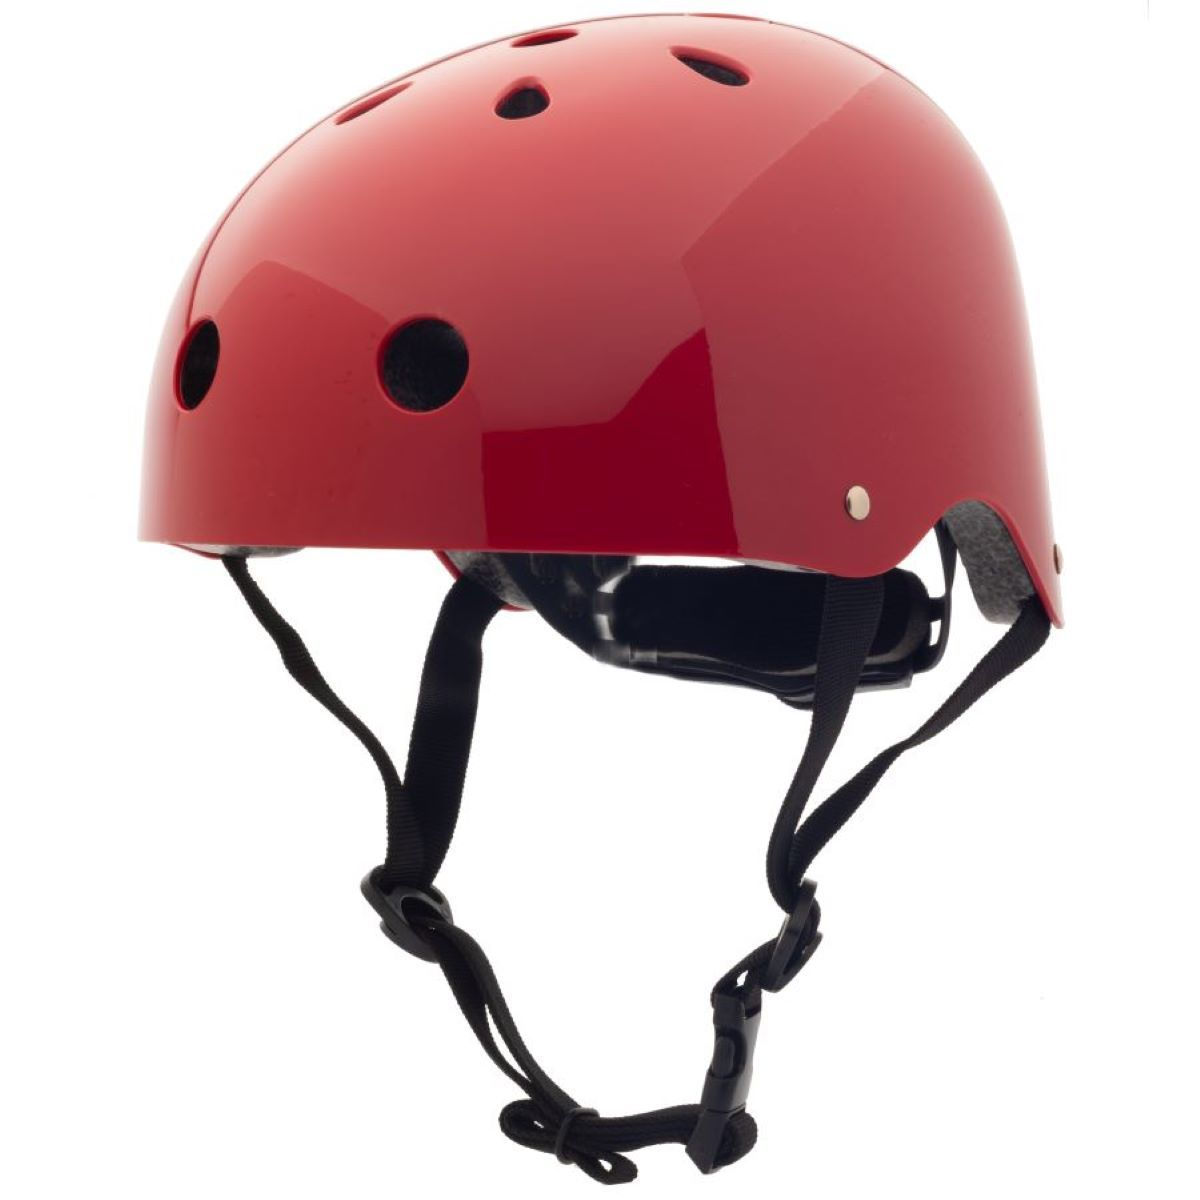 Trybike CoConuts Helmet in Red - Extra Small